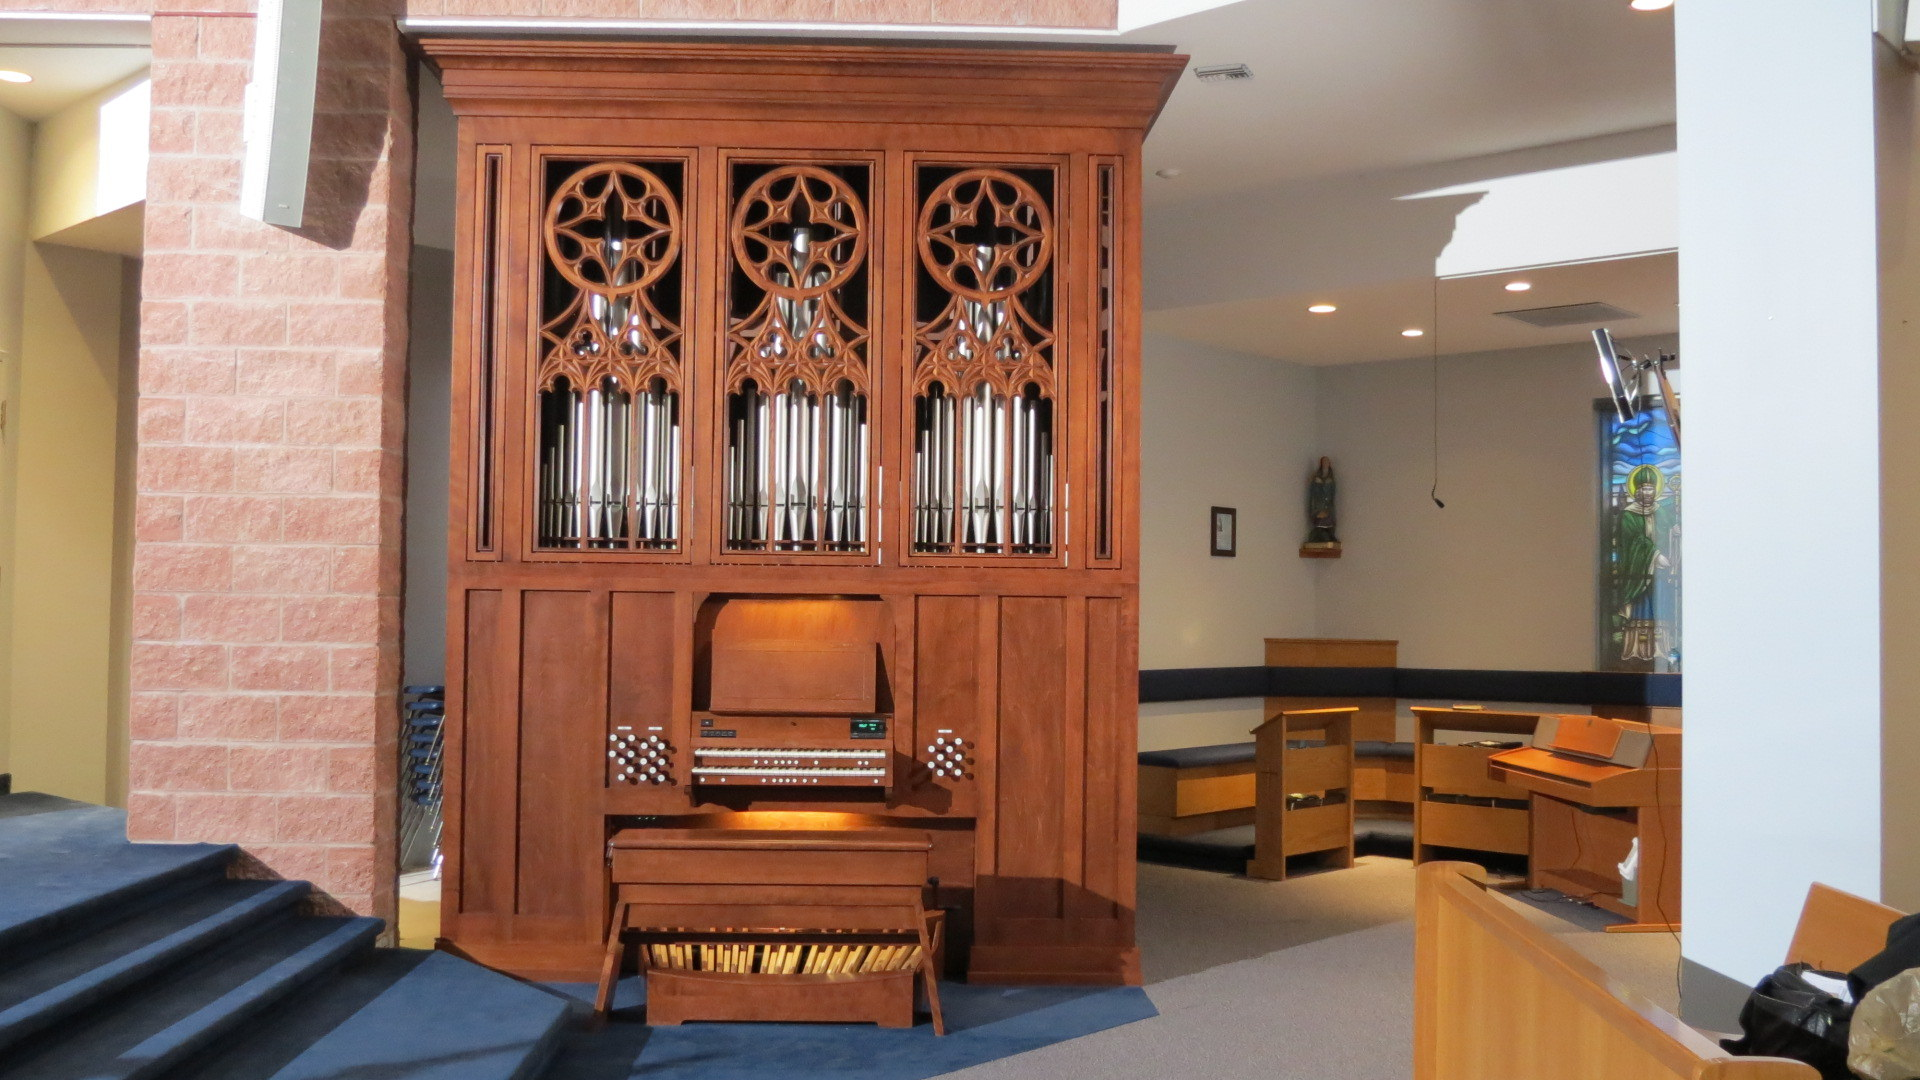 The nine-rank Inspiration Organ with attached console, installed in Immaculate Conception Church in Port Perry, Ontario